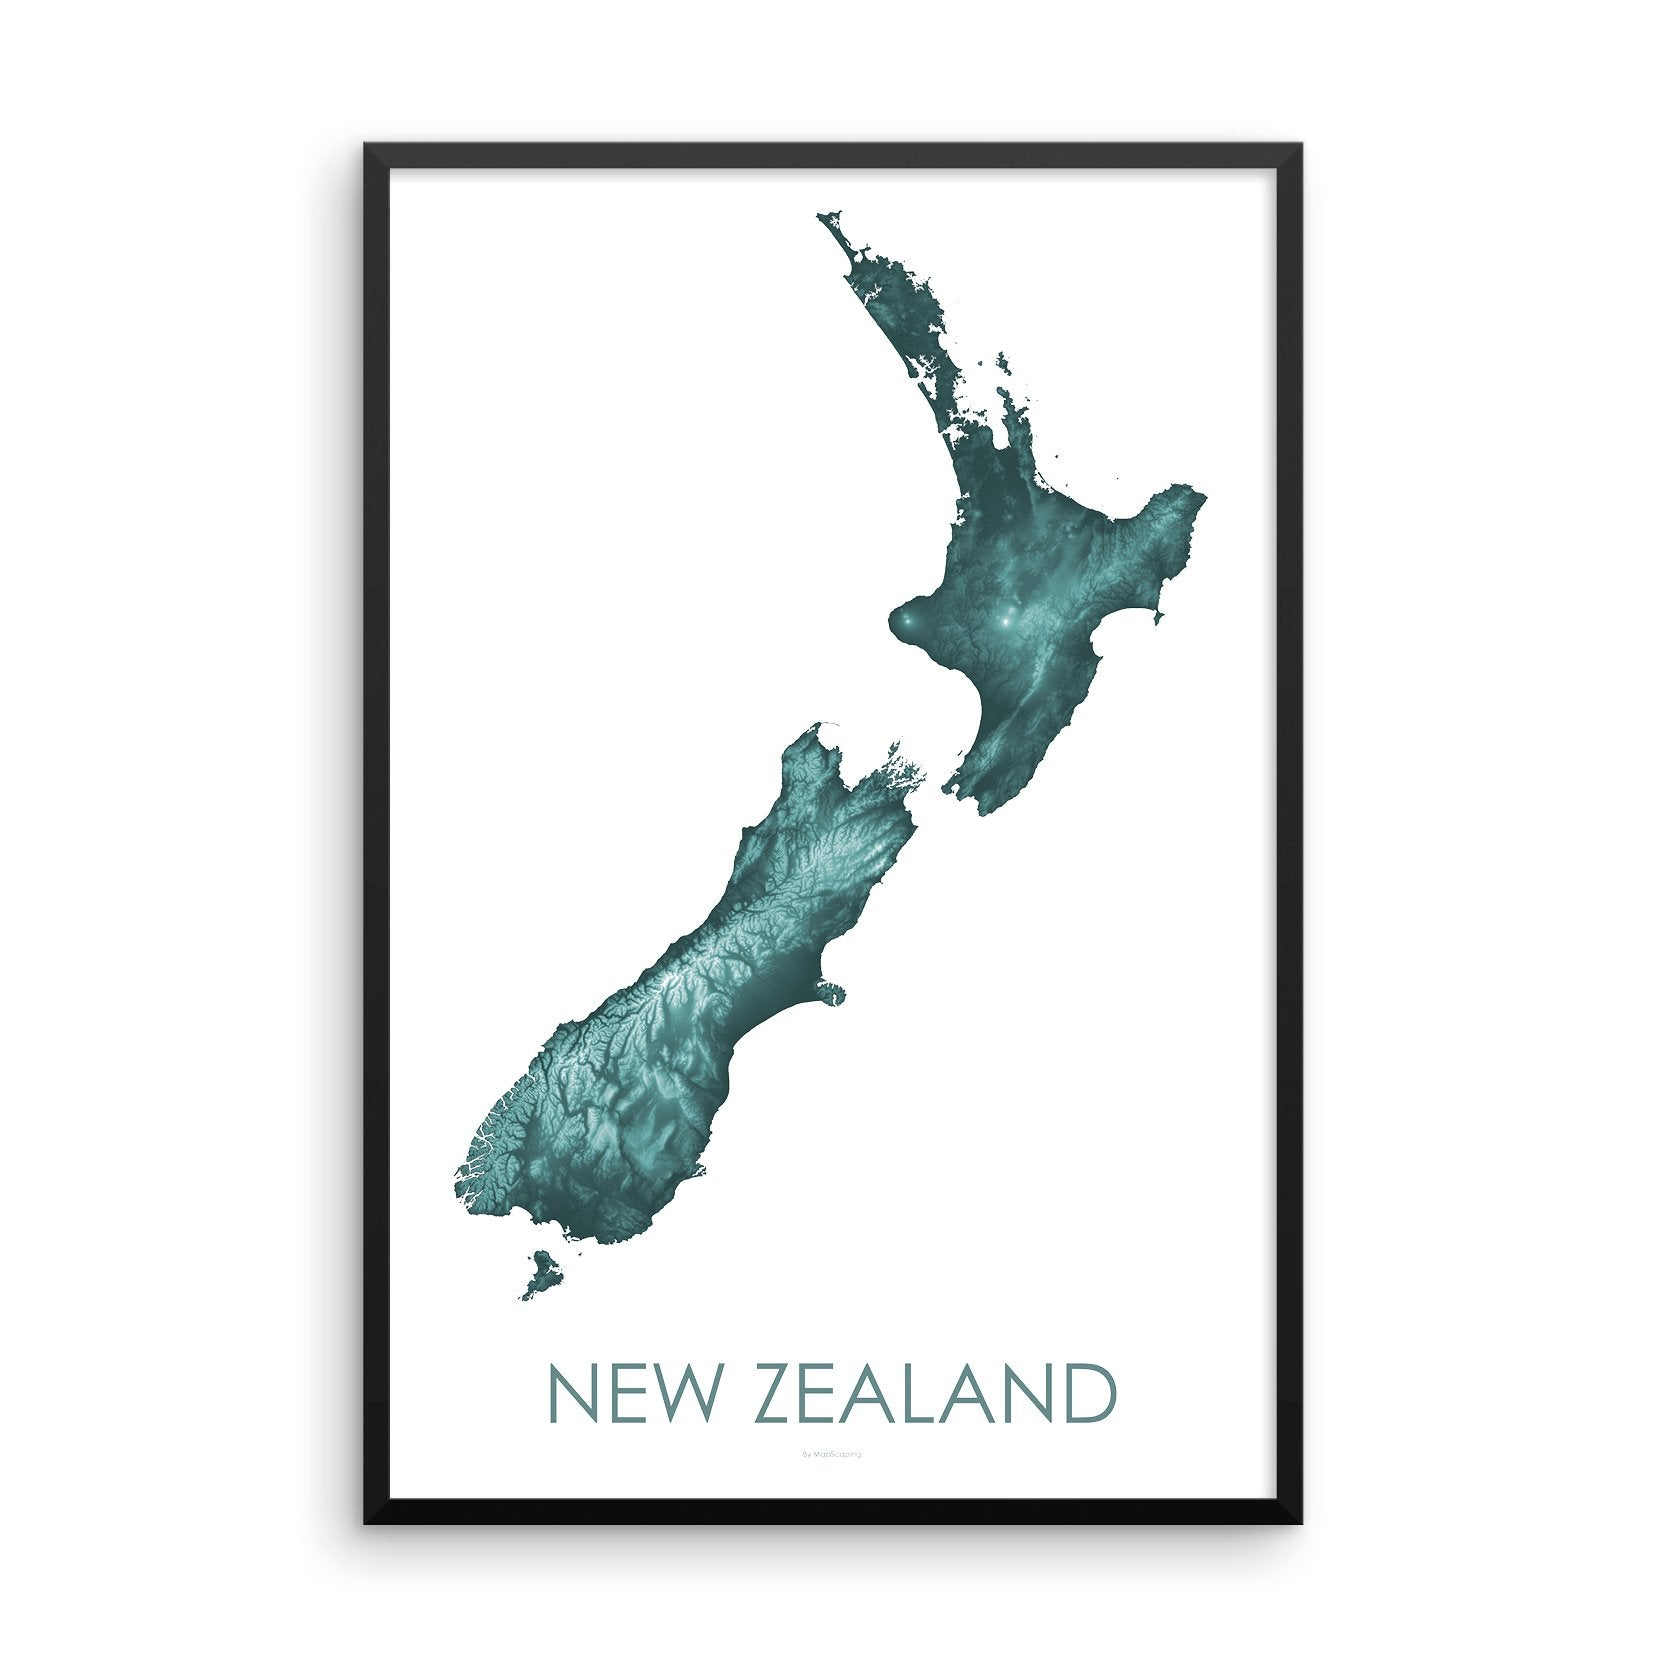 Framed teal poster map of New Zealand's North and South Islands, detailed map print showing the mountains of New Zealand's landscape.